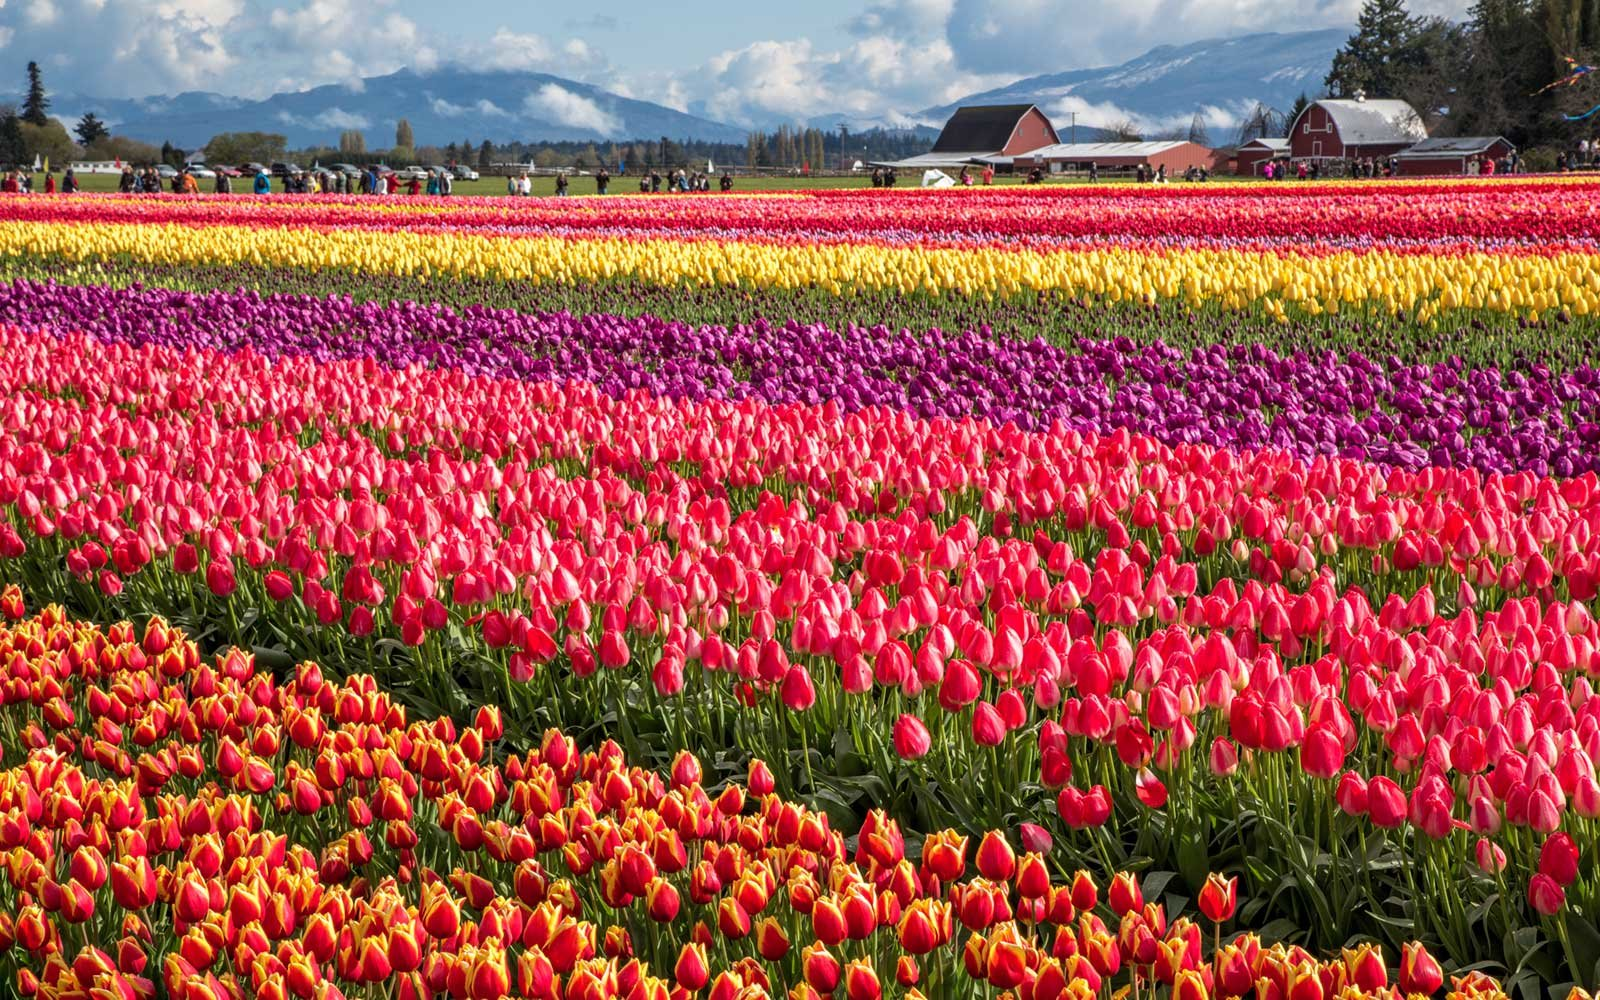 Skagit Valley Tulip Festival in Mount Vernon, Washington